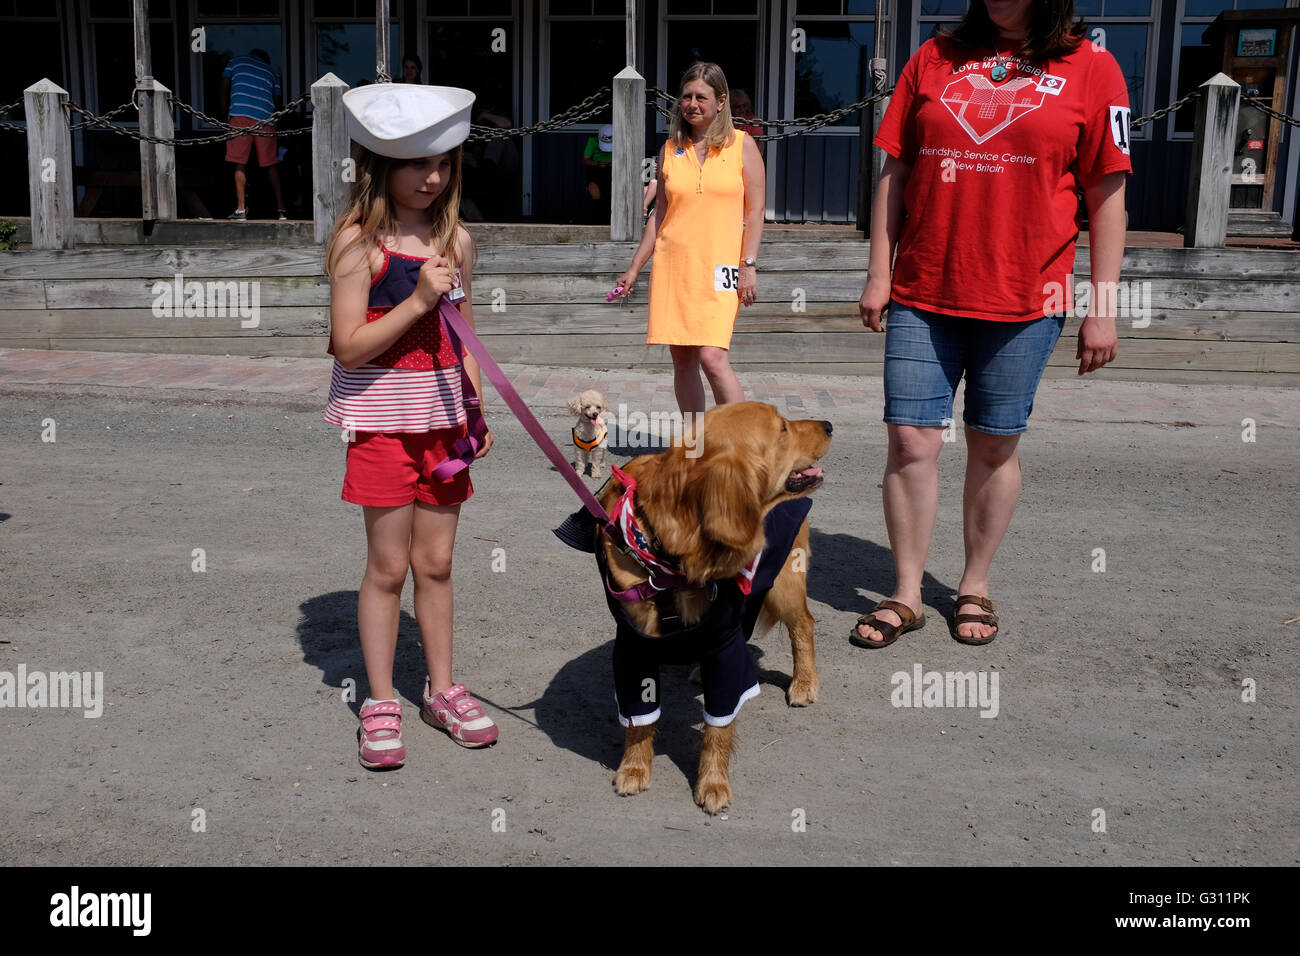 Little girl dressed as a sailor with her dog dressed the same at Costumed Dog Parade in Mystic Seaport, Connecticut - Stock Image